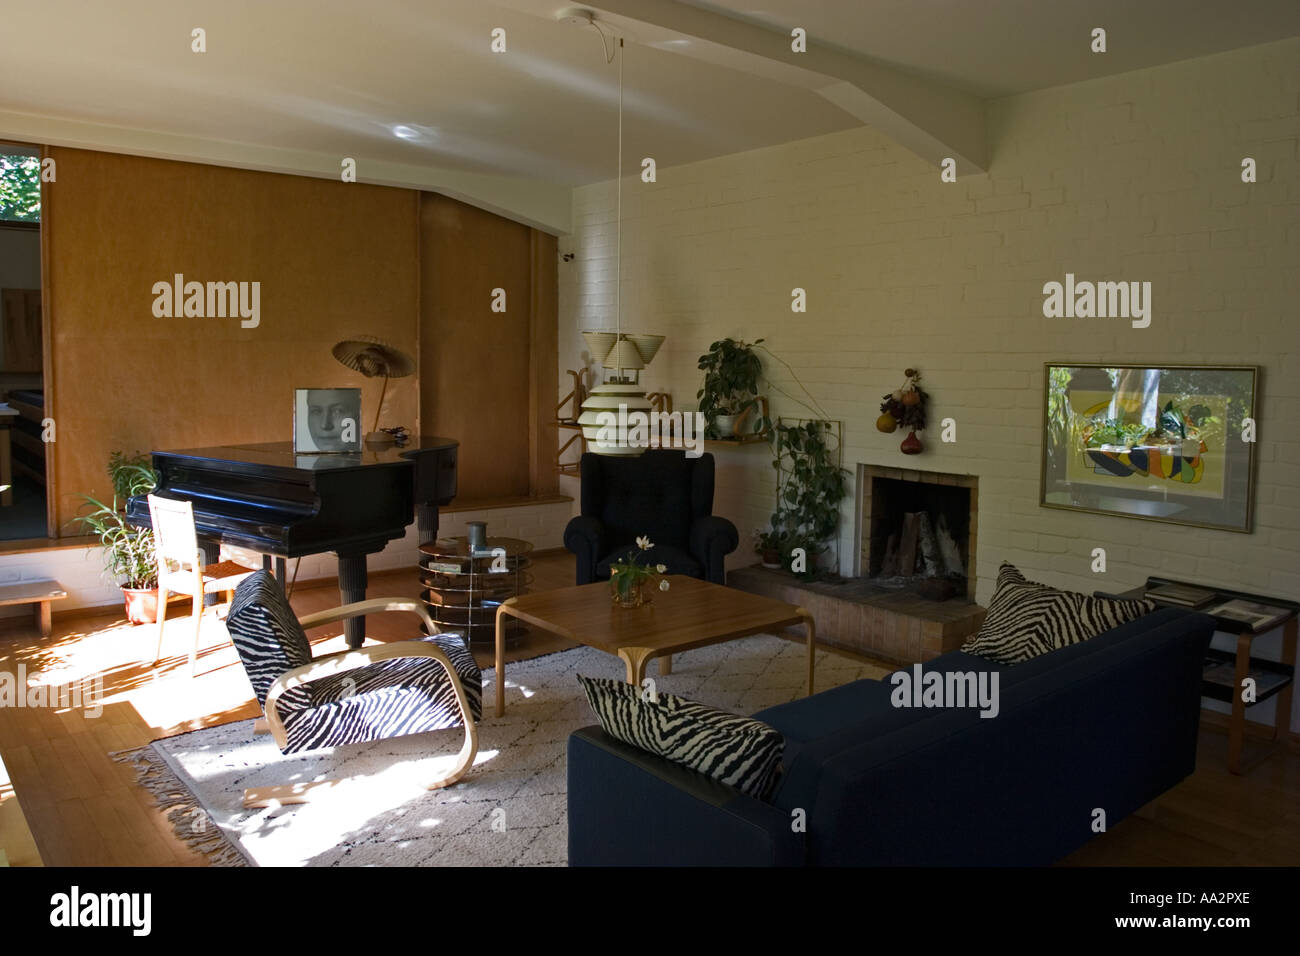 aalto interior stockfotos aalto interior bilder alamy. Black Bedroom Furniture Sets. Home Design Ideas